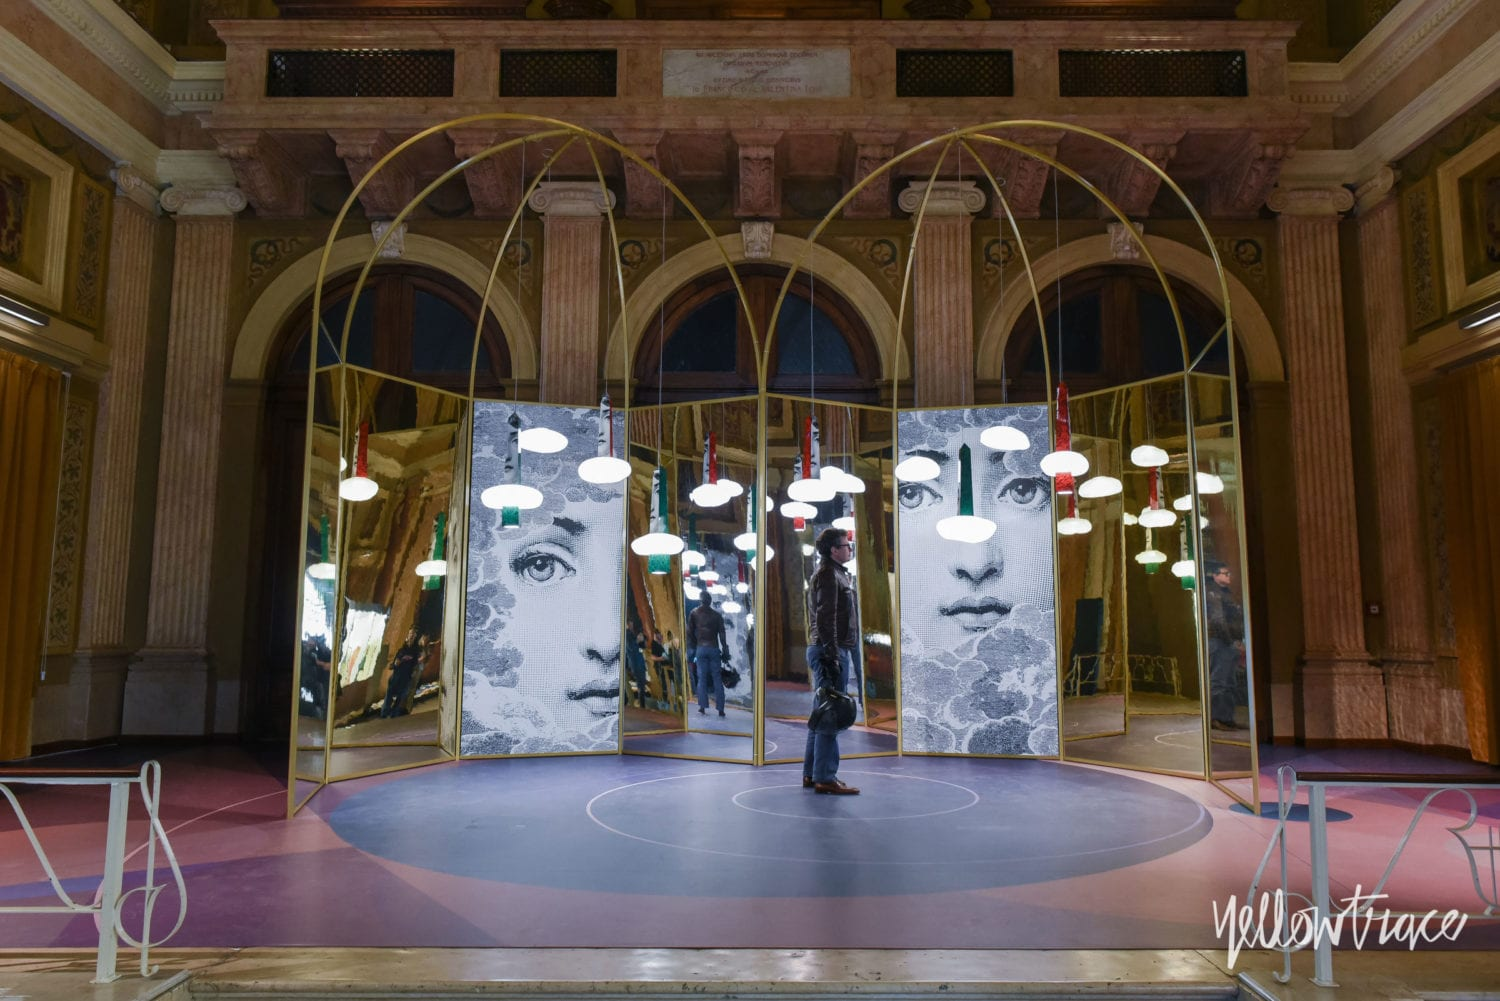 Milan Design Week 2018 Highlights, Kosmos installation by WonderGlass at Via Vivaio. Photo © Nick Hughes | #Milantrace2018